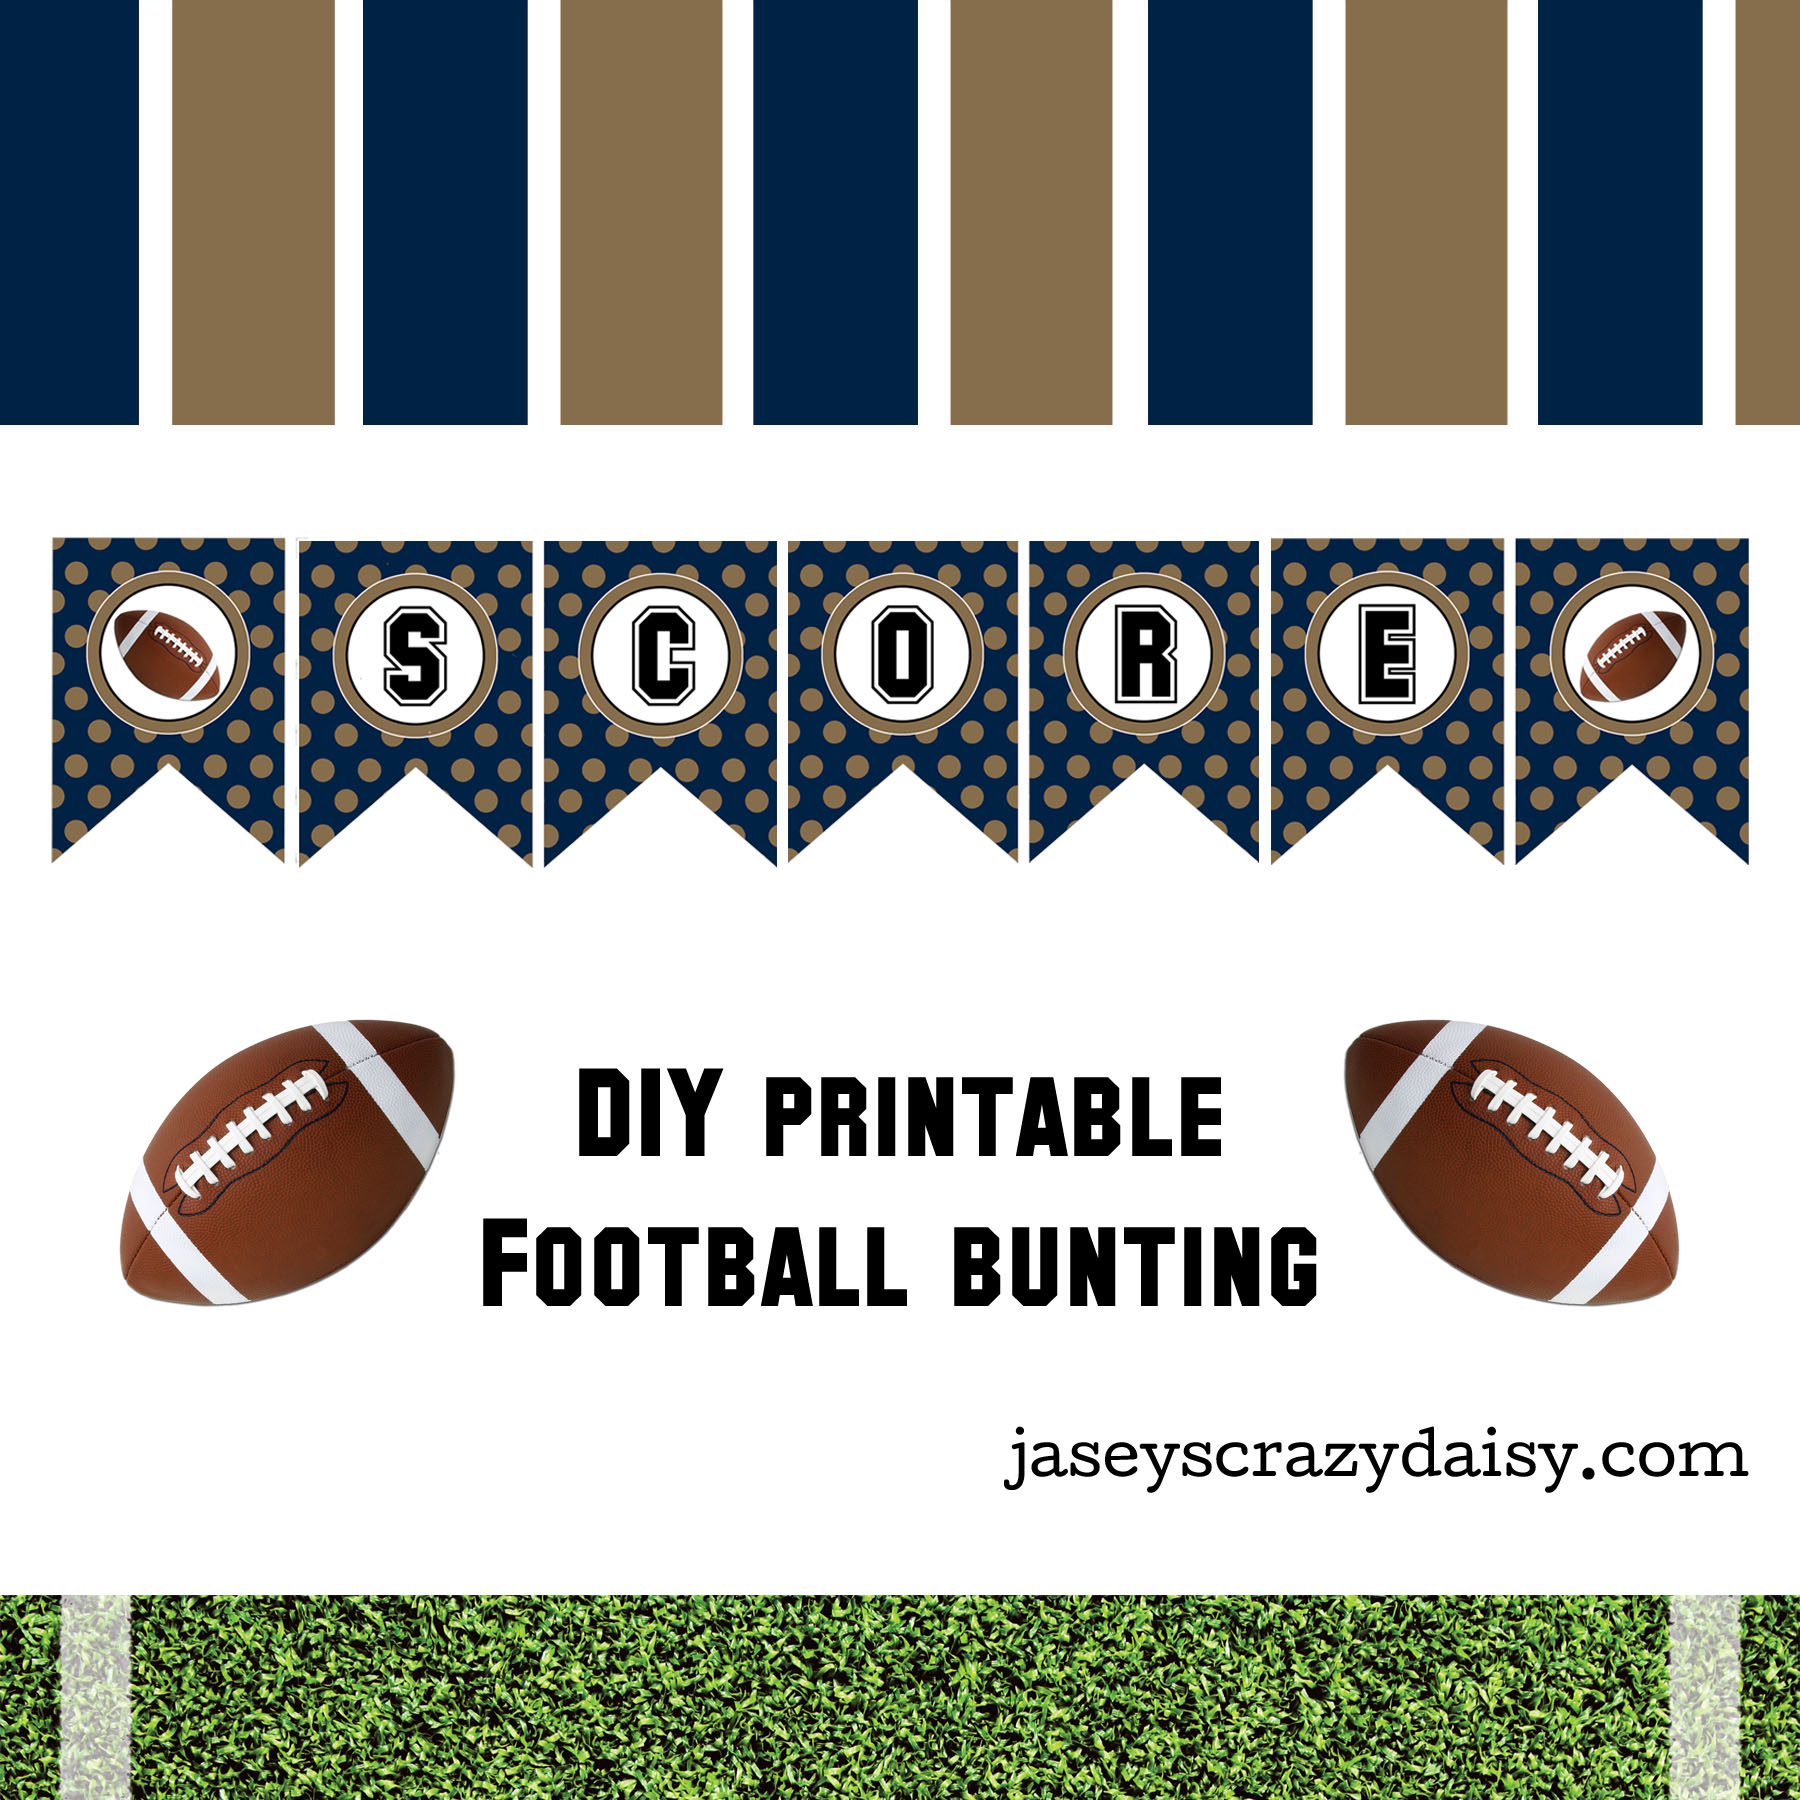 graphic relating to Printable Football referred to as Do-it-yourself Printable Rating Armed service and Gold Soccer Bunting- Immediate Obtain - Jaseys Ridiculous Daisy